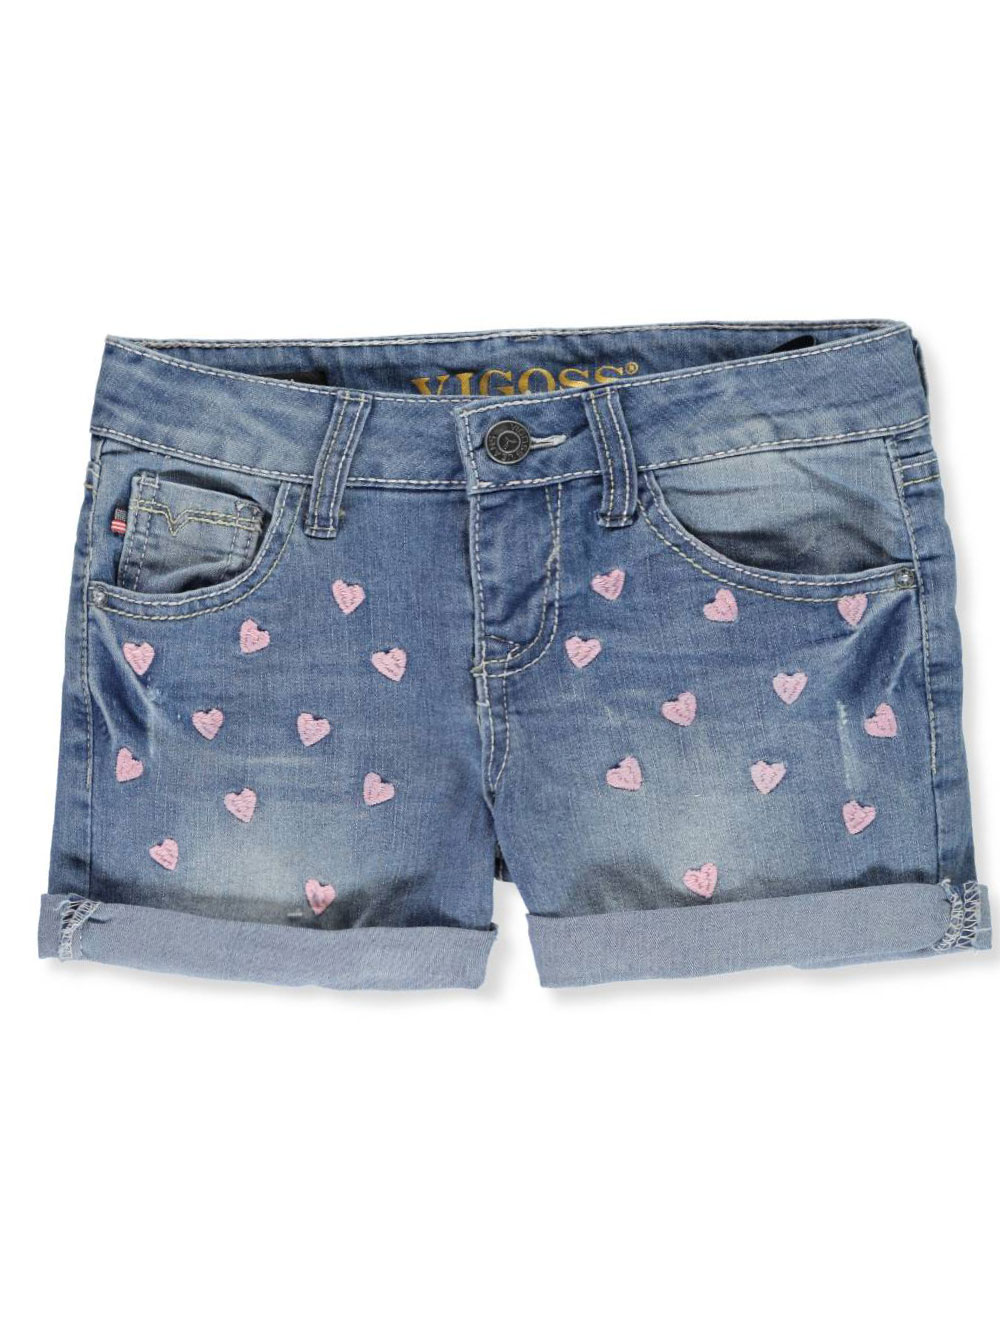 9fdfd7471 Girls' Denim Short Shorts by Vigoss in Strong blue from Cookie's Kids